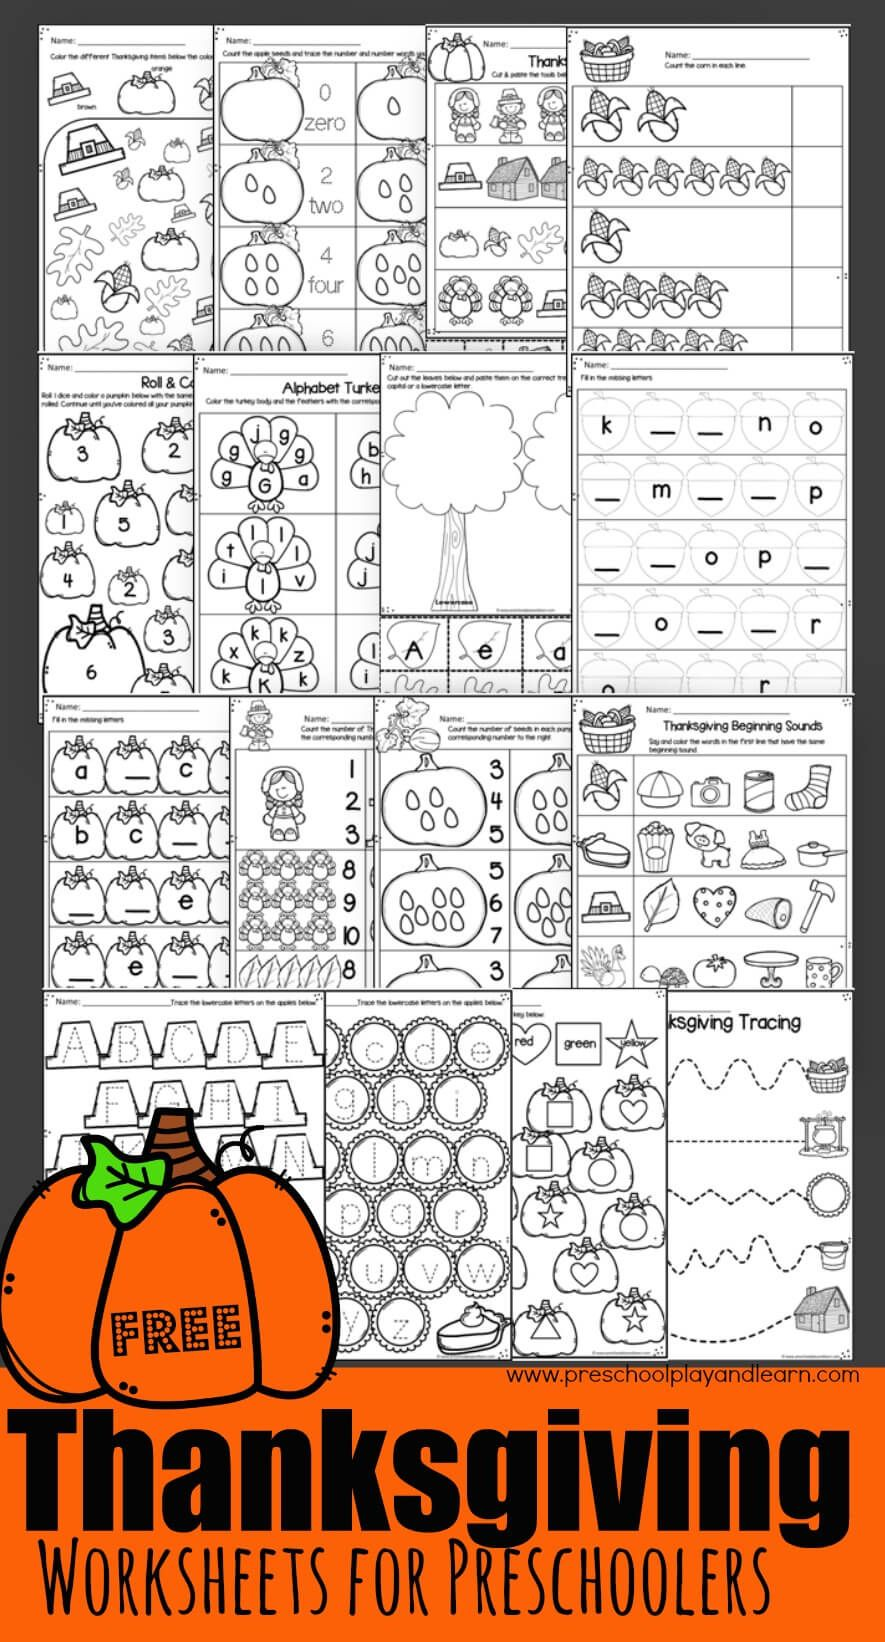 Free Thanksgiving Worksheets Practice Math And Literacy Skills With Thanksgiving Worksheets Thanksgiving Worksheets Kindergarten Thanksgiving Math Worksheets